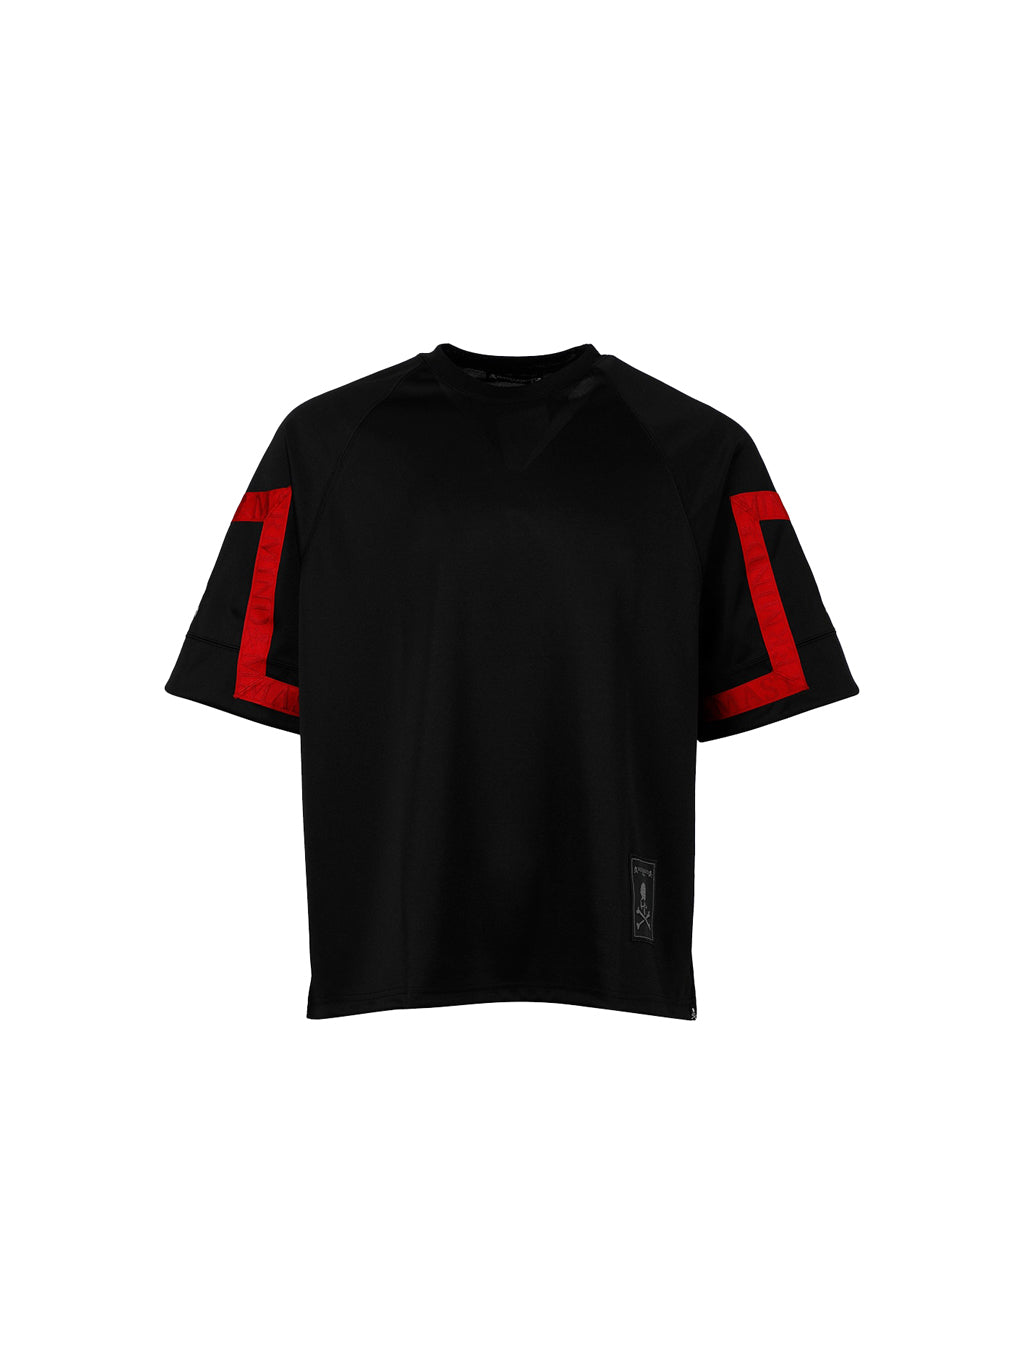 Black & Red Jacquard Tape Crewneck T-Shirt